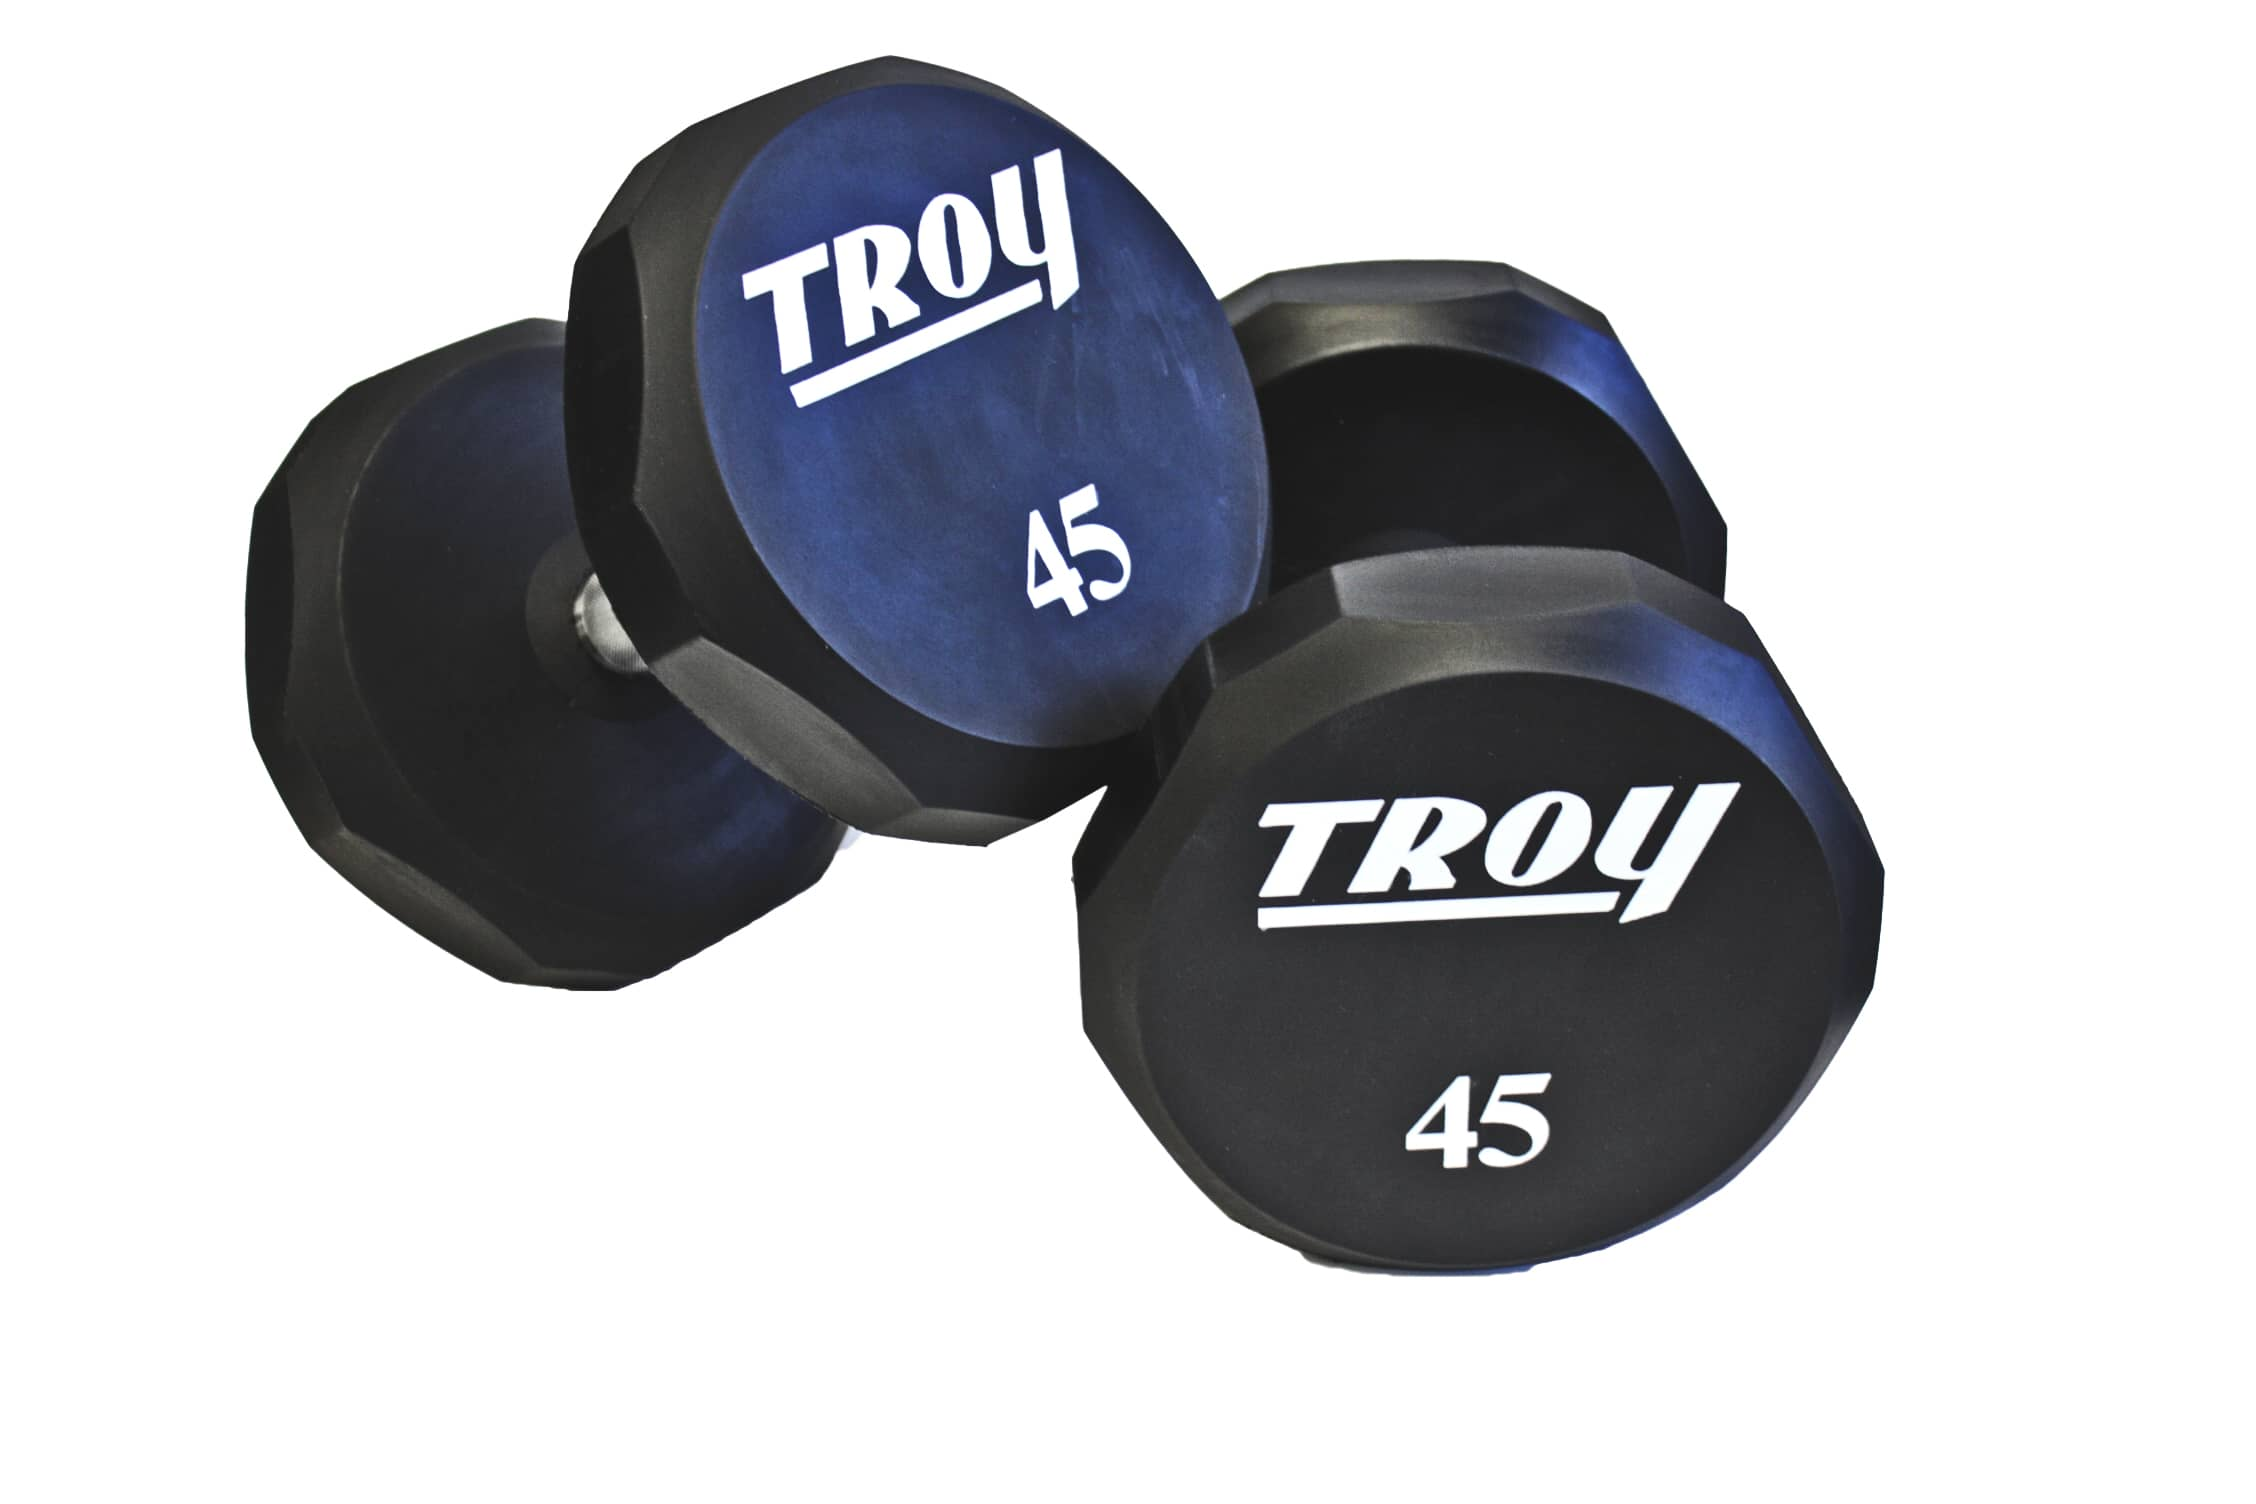 Troy Urethane Dumbbell Weight Set 55 - 75 lb. Pairs - Flat 12-Sided Head (Commercial Gym Quality) by Troy Barbell